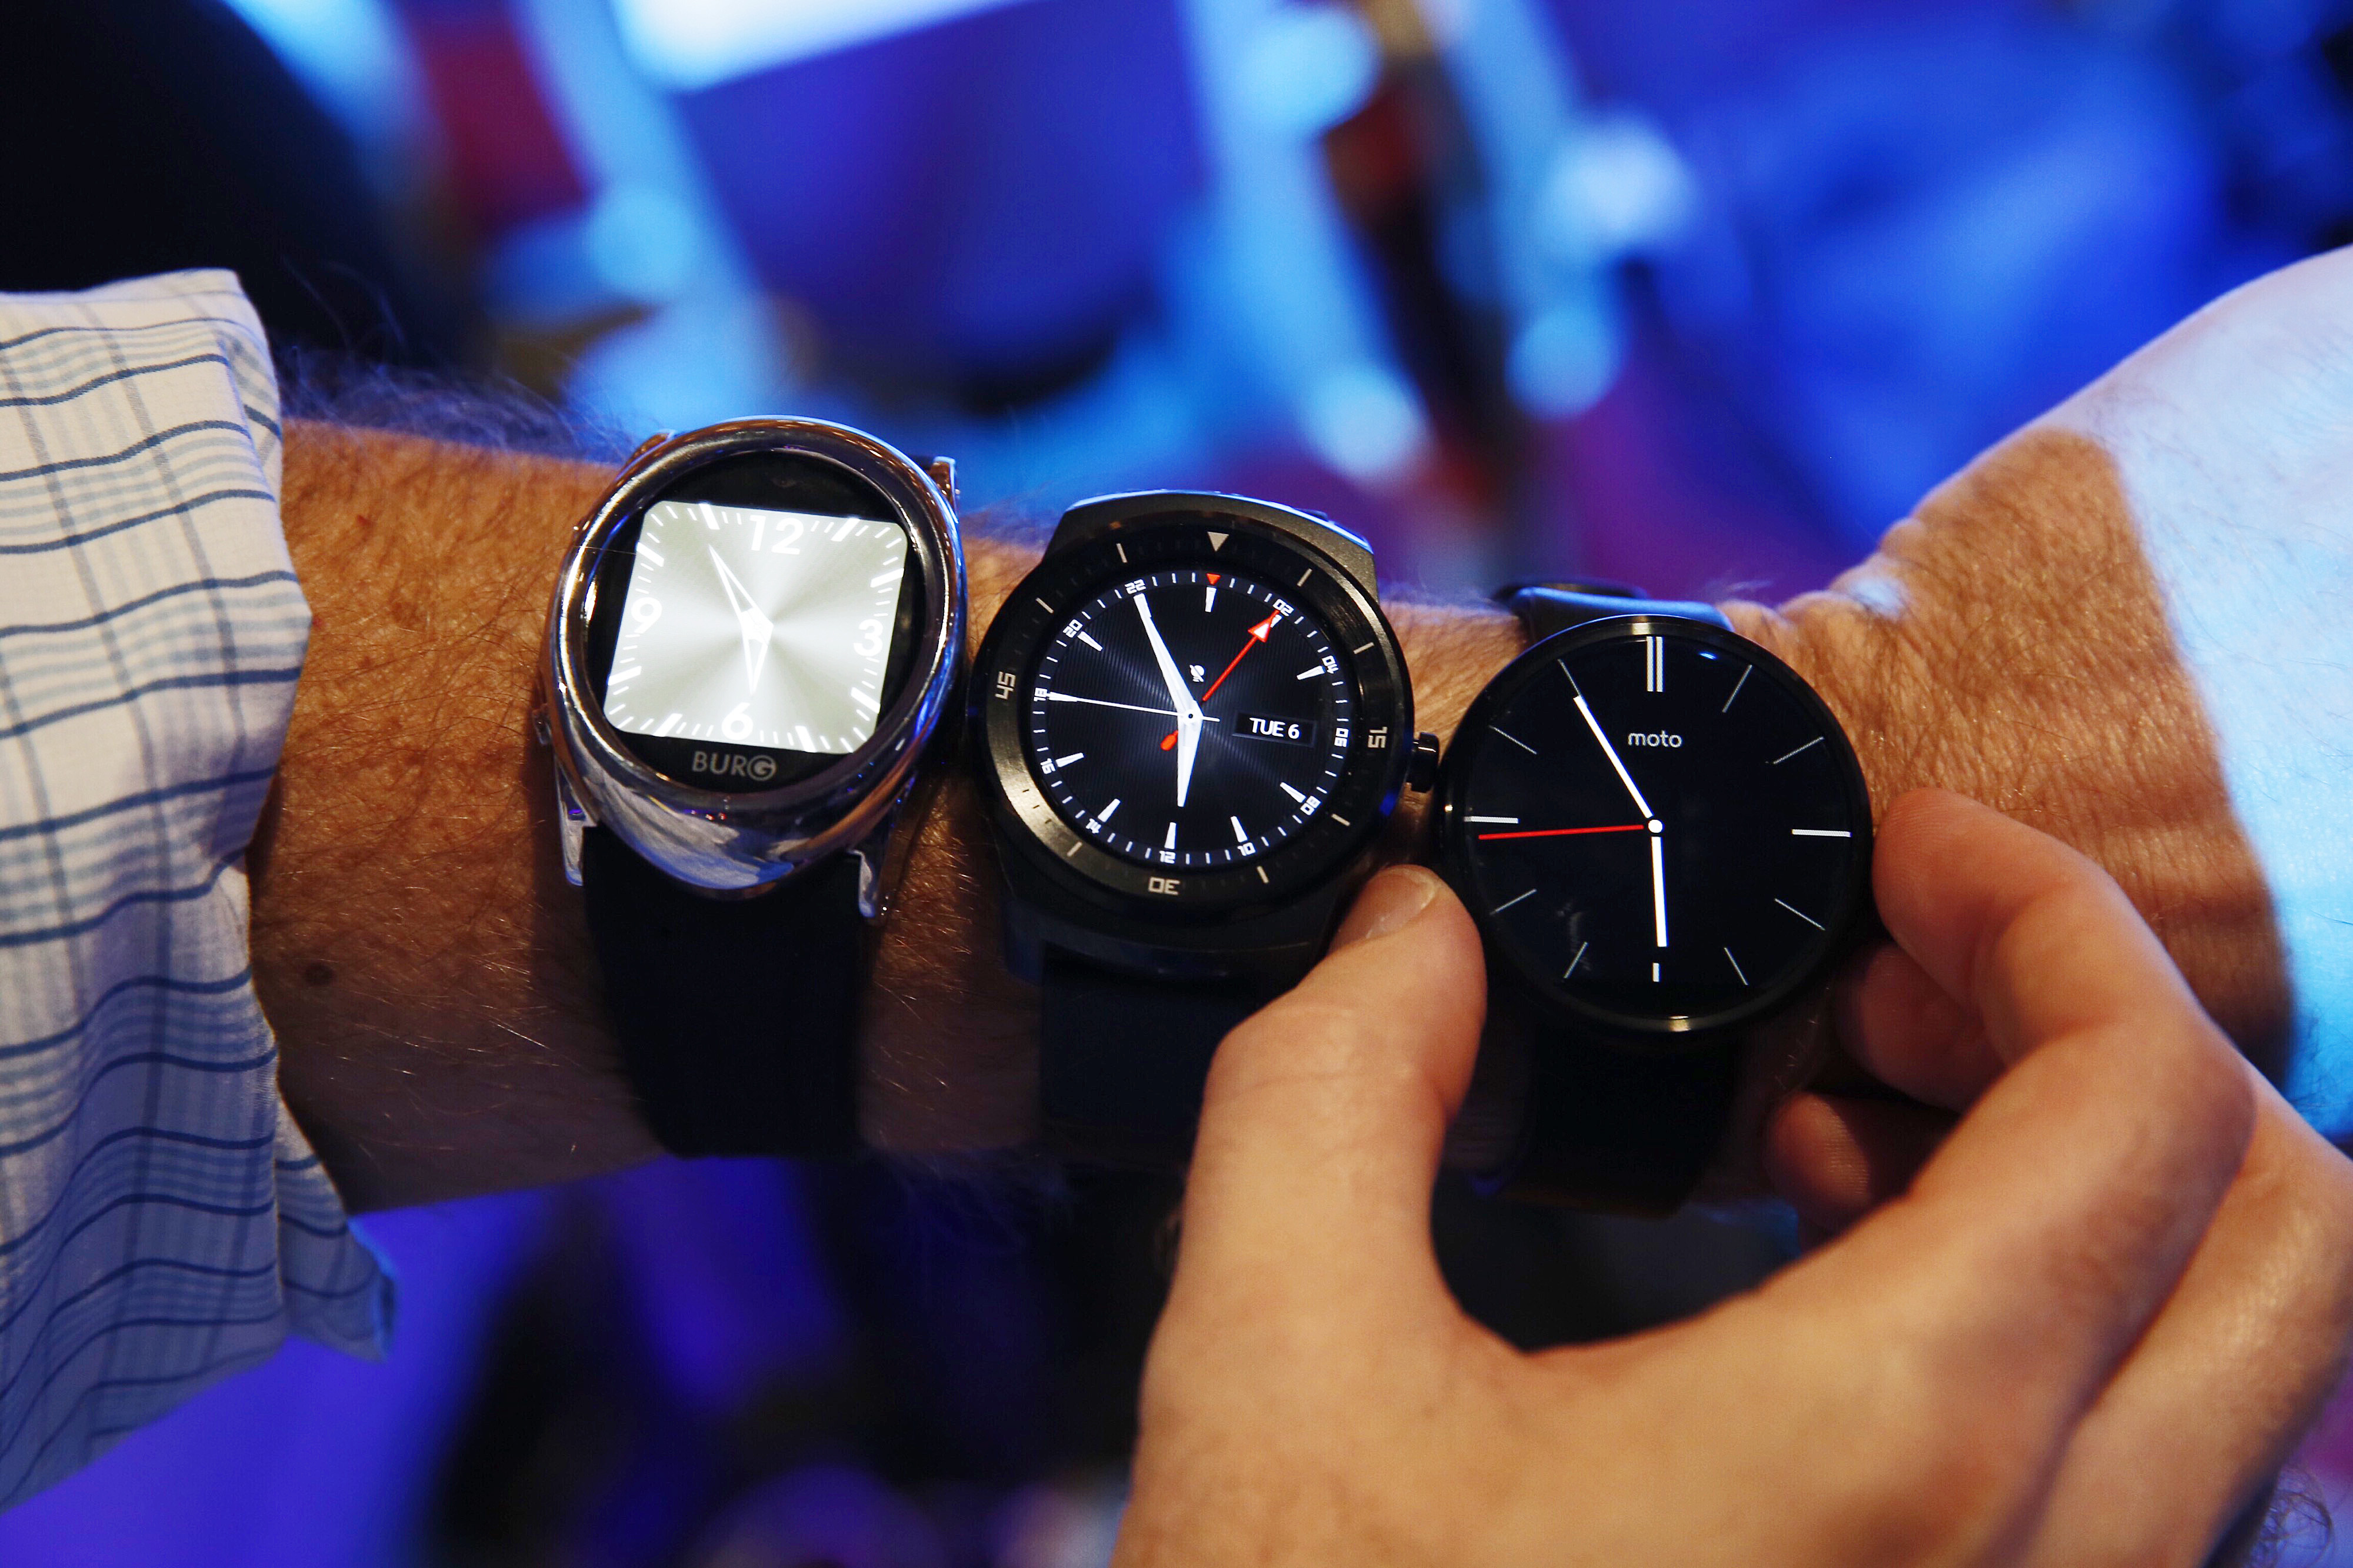 Smartwatches the Burg 12, left, the LG G Watch R, center, and the Moto 360 are arranged for a photograph during CES in Las Vegas on Jan. 6, 2015.